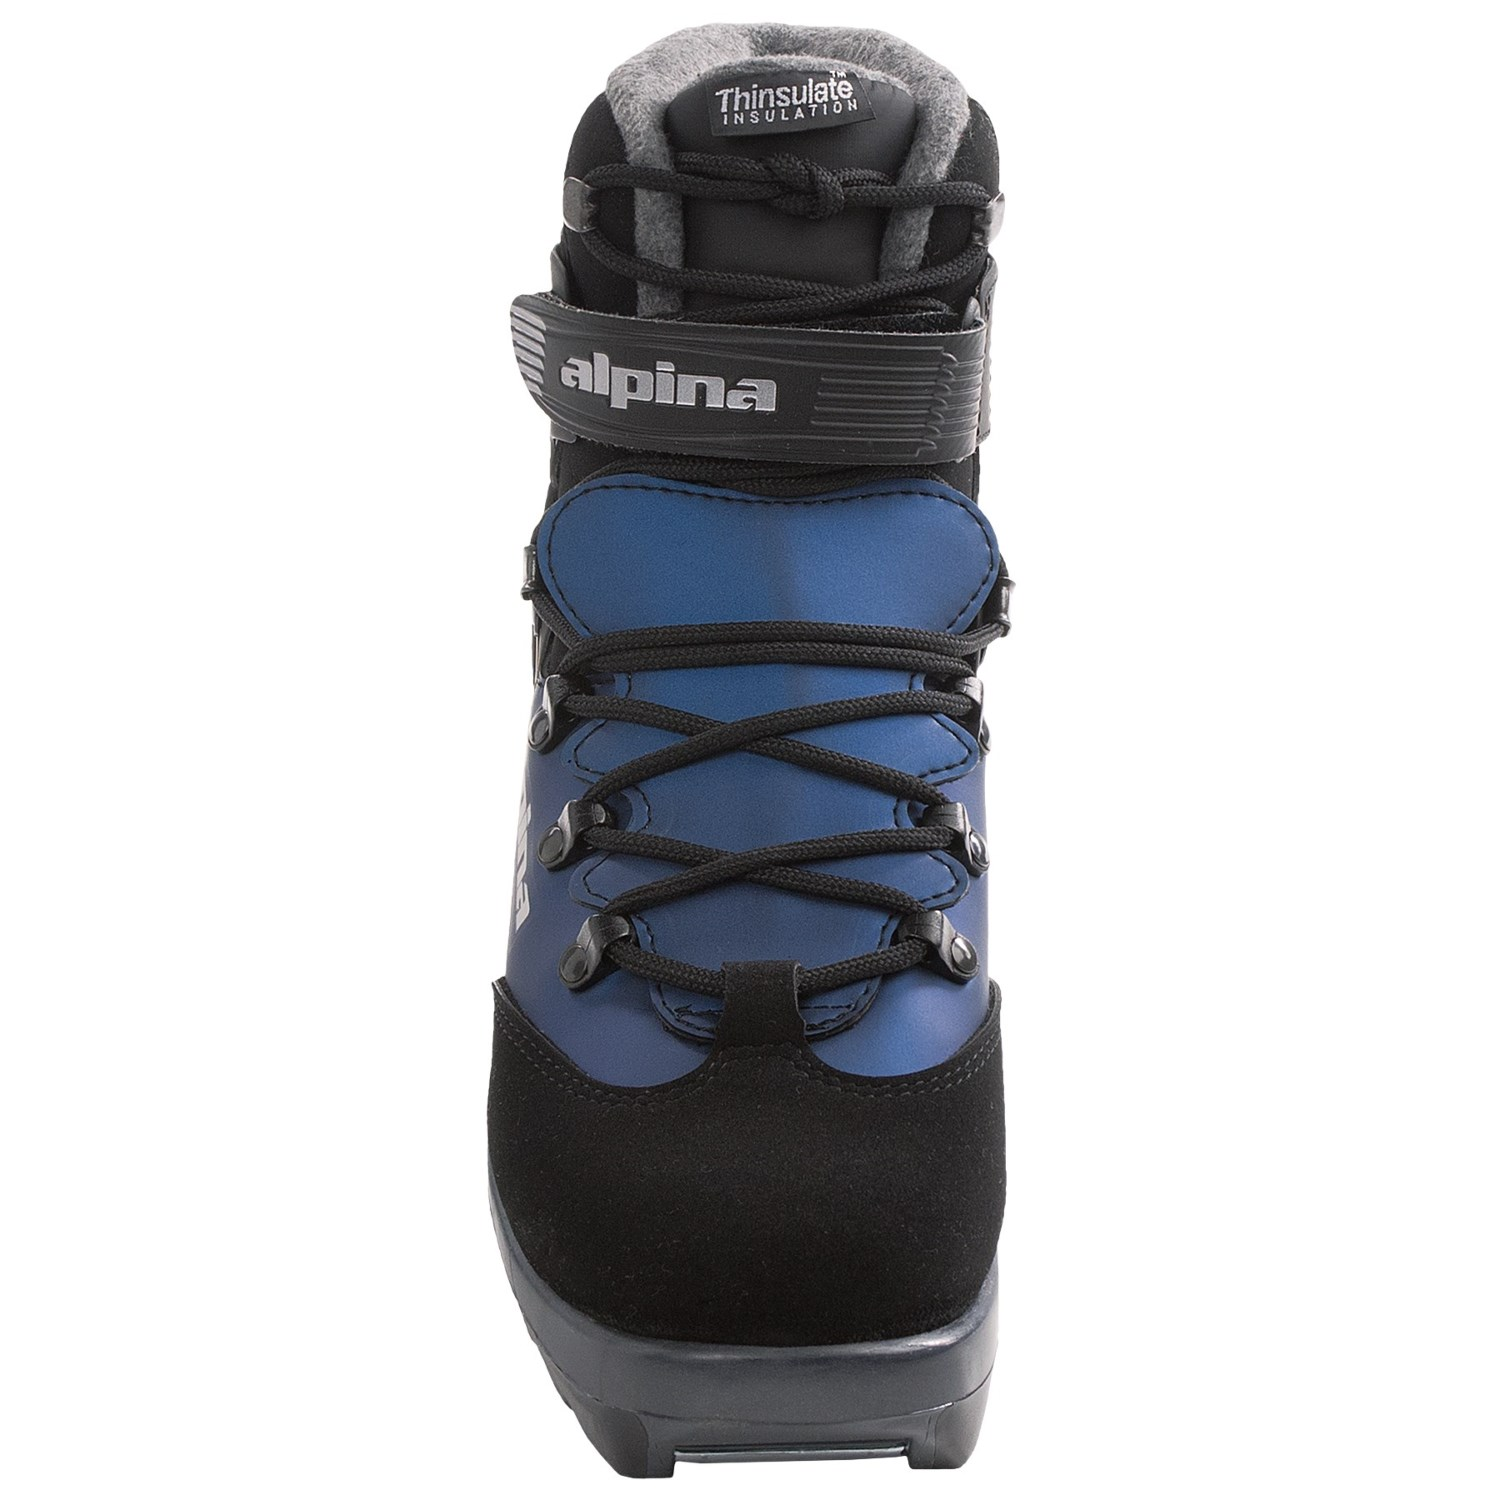 Alpina Ski Boots Review Alpina Bc Ski Boot O Vbestreviews - Alpina 1550